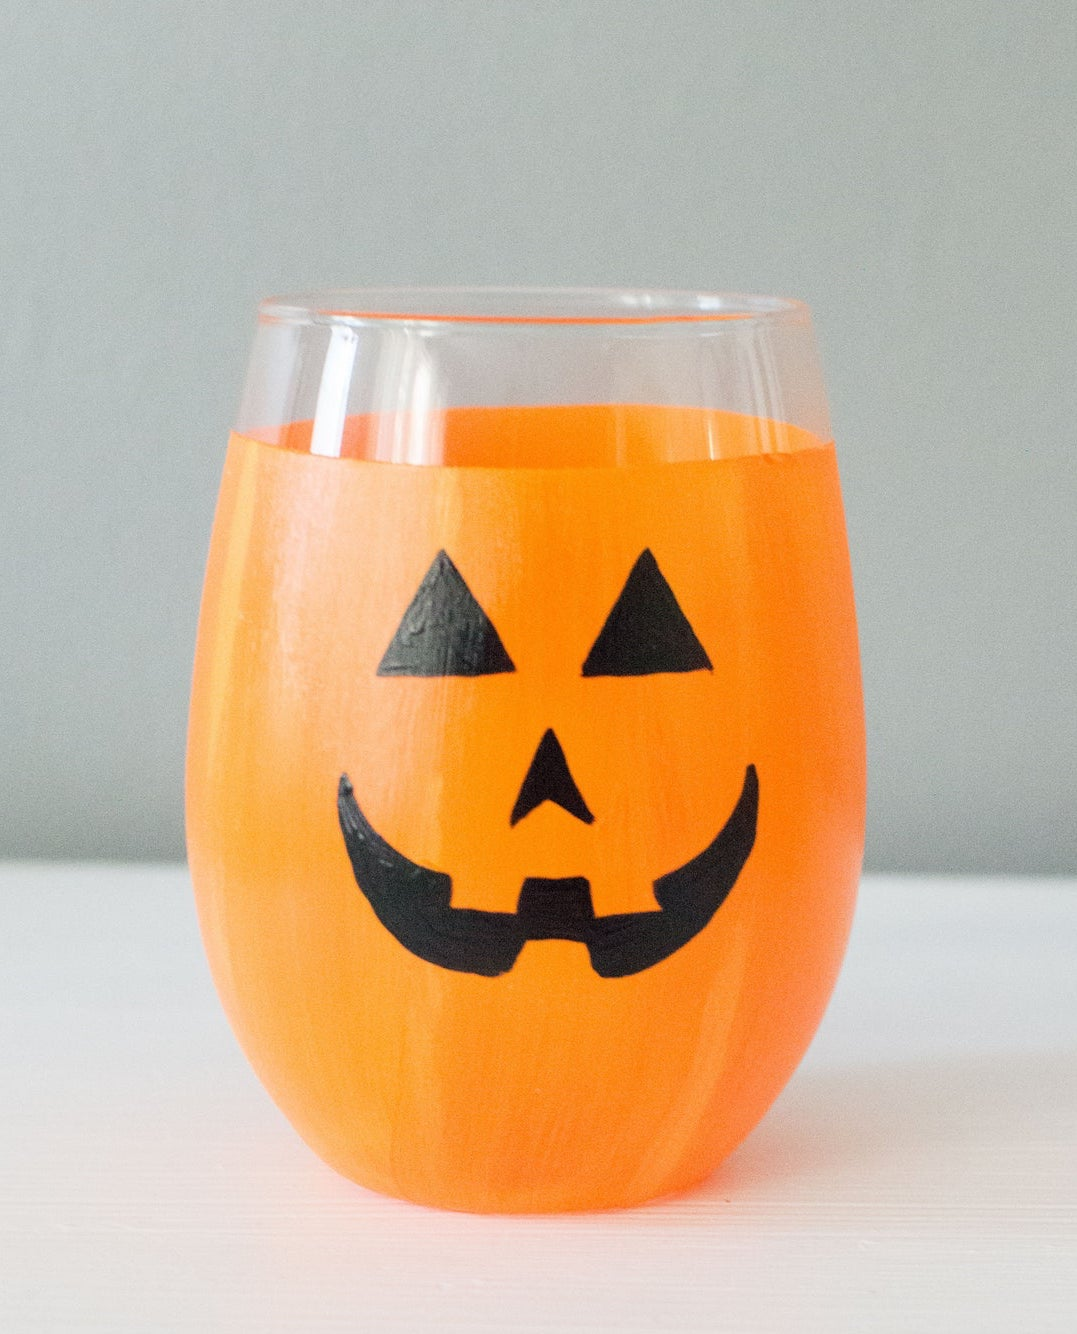 wine glass painted like a jack o lantern